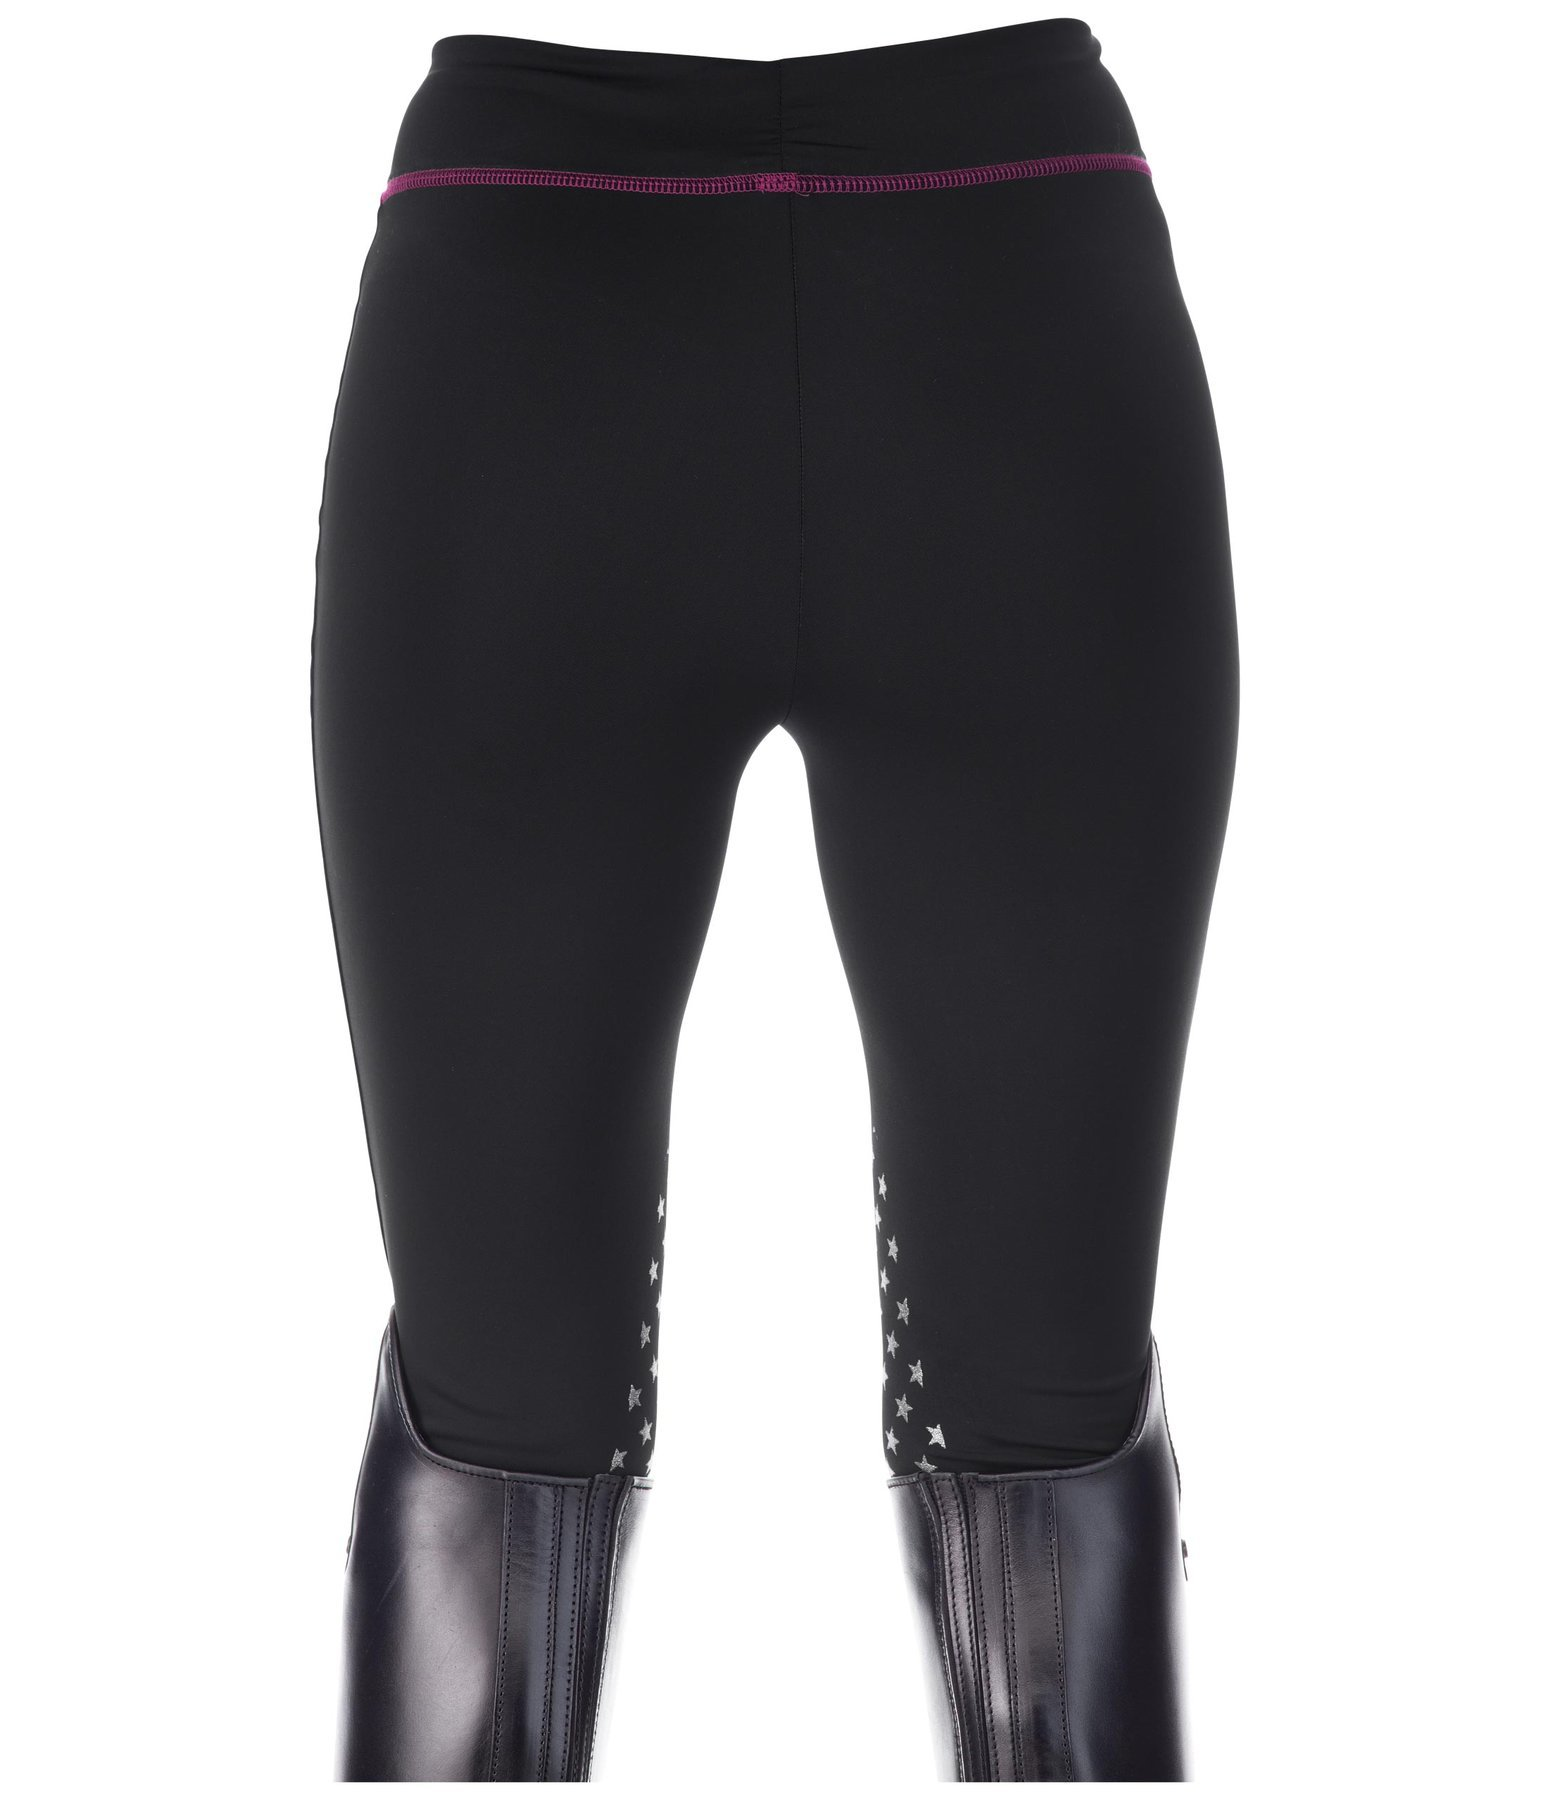 Kinder-Grip-Kniebesatzreitleggings Hailey